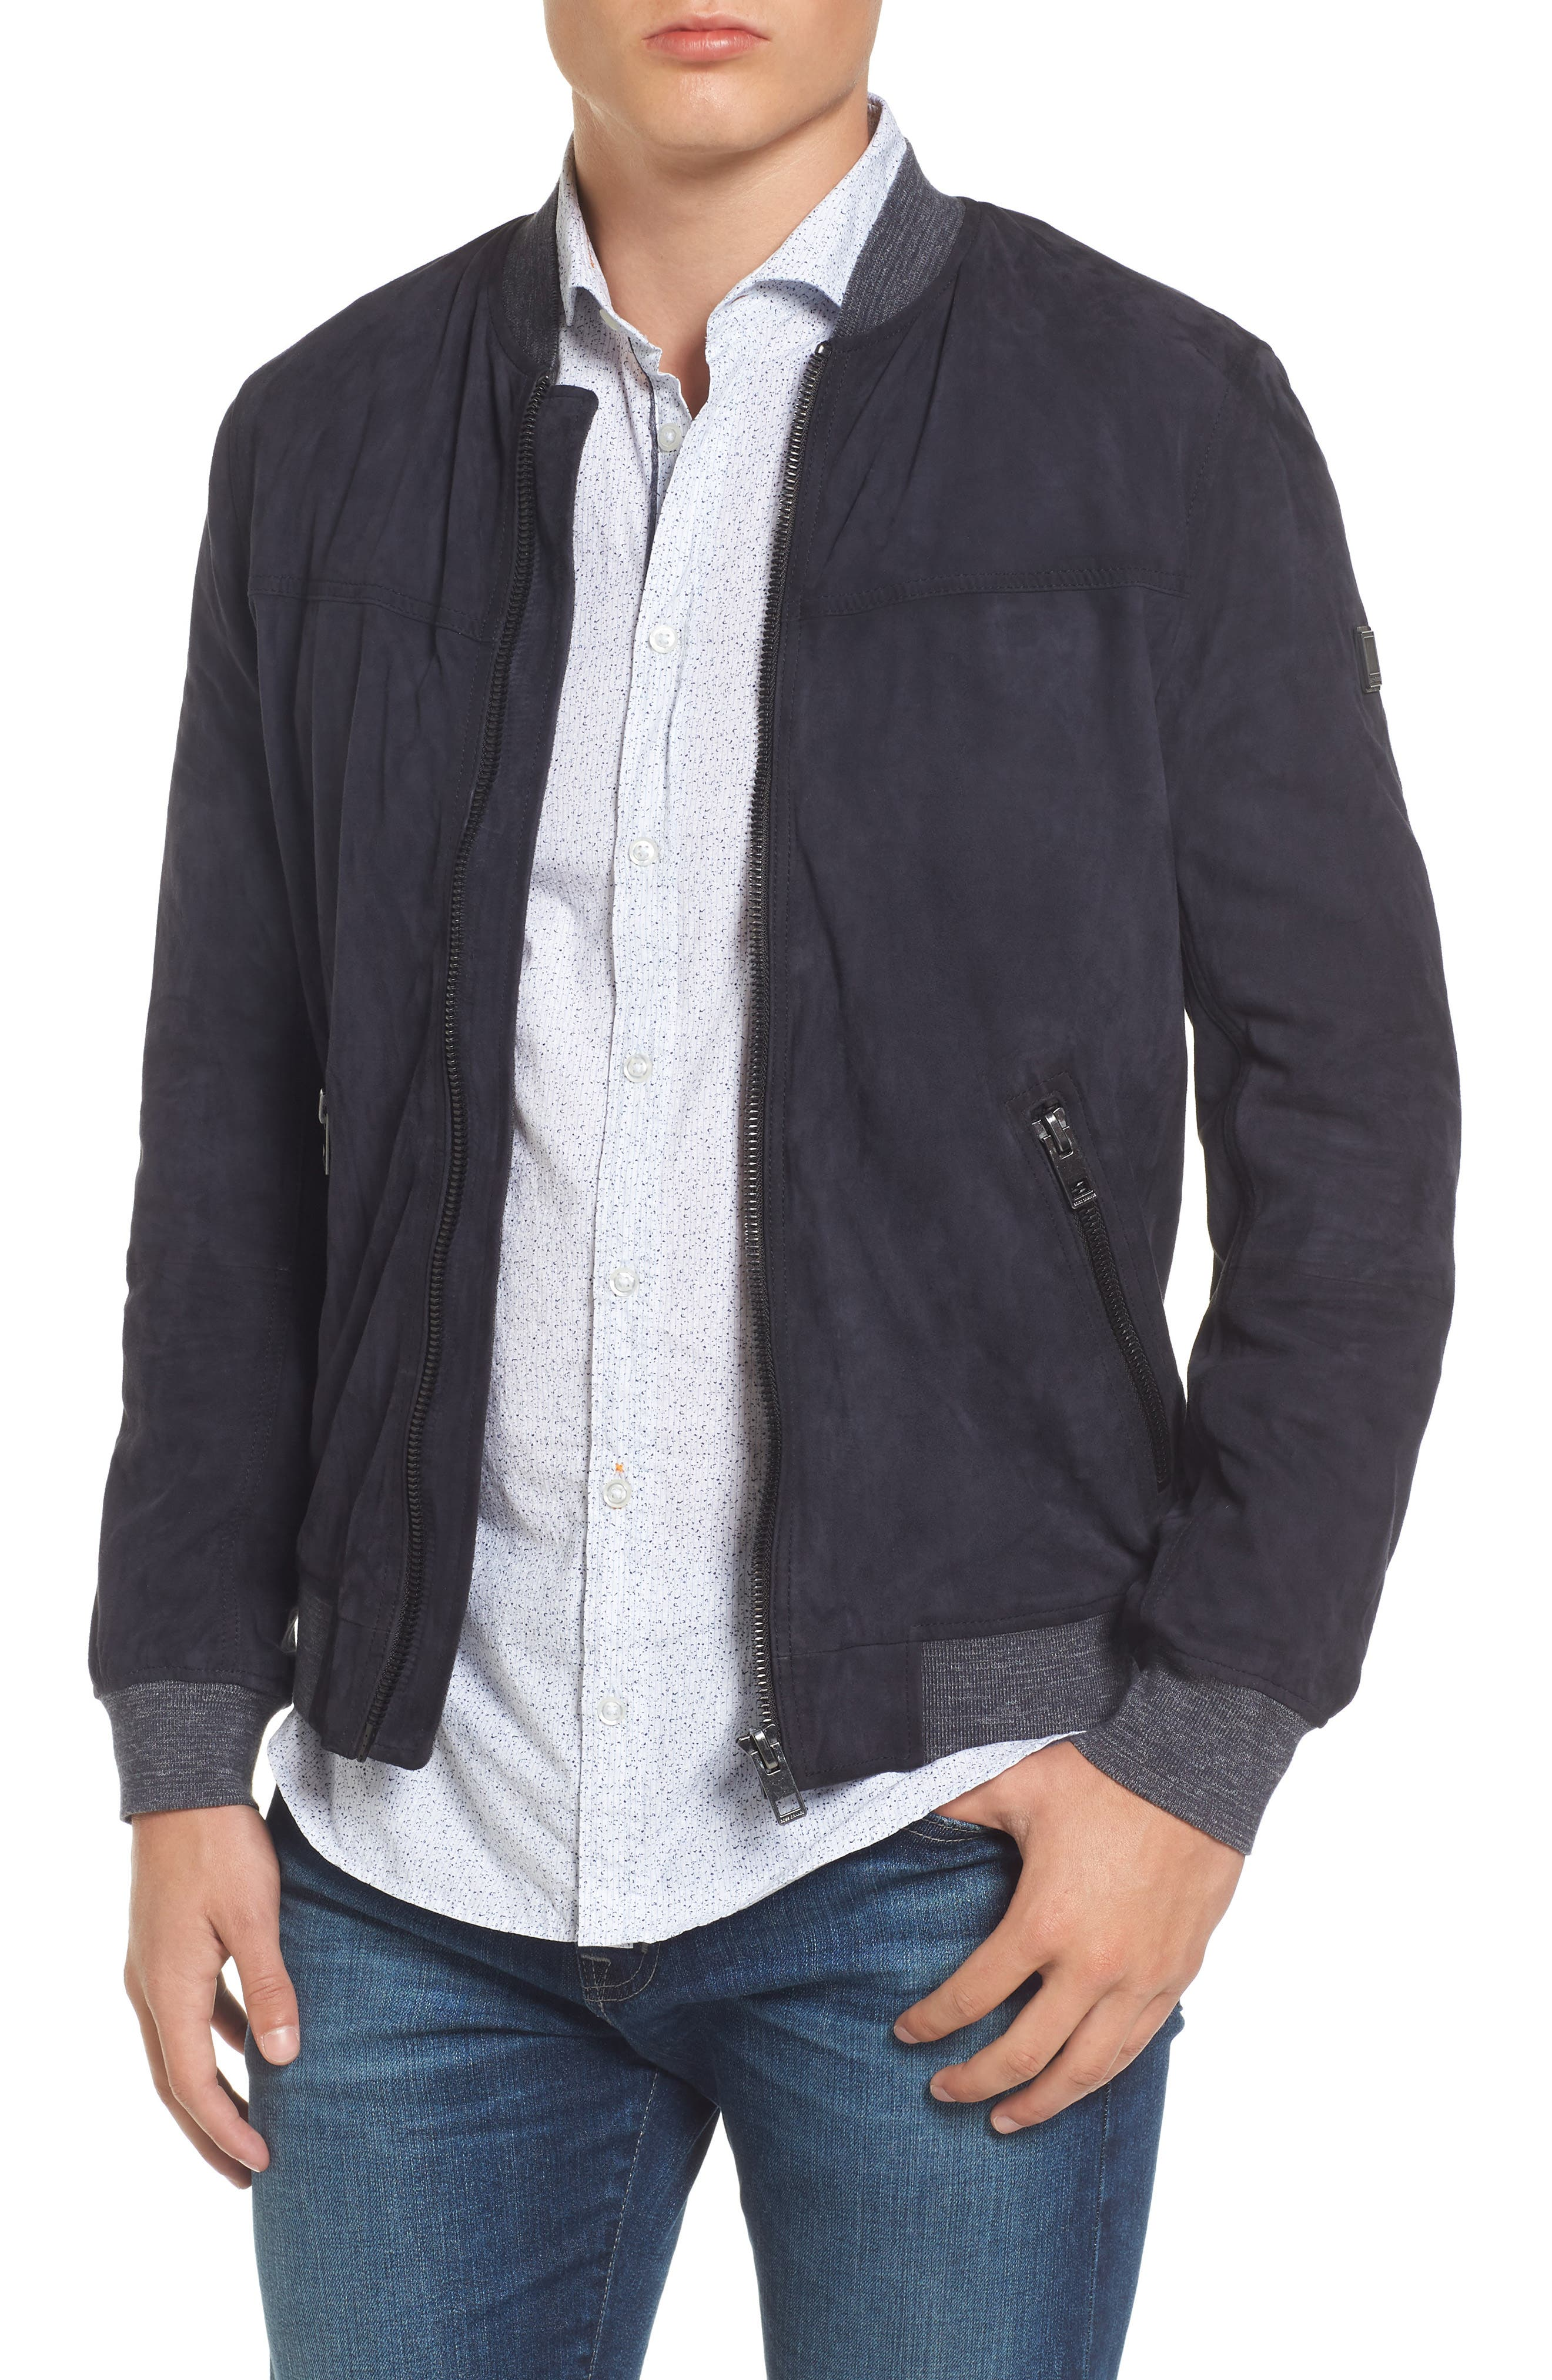 Suede Bomber Jacket,                             Main thumbnail 1, color,                             404